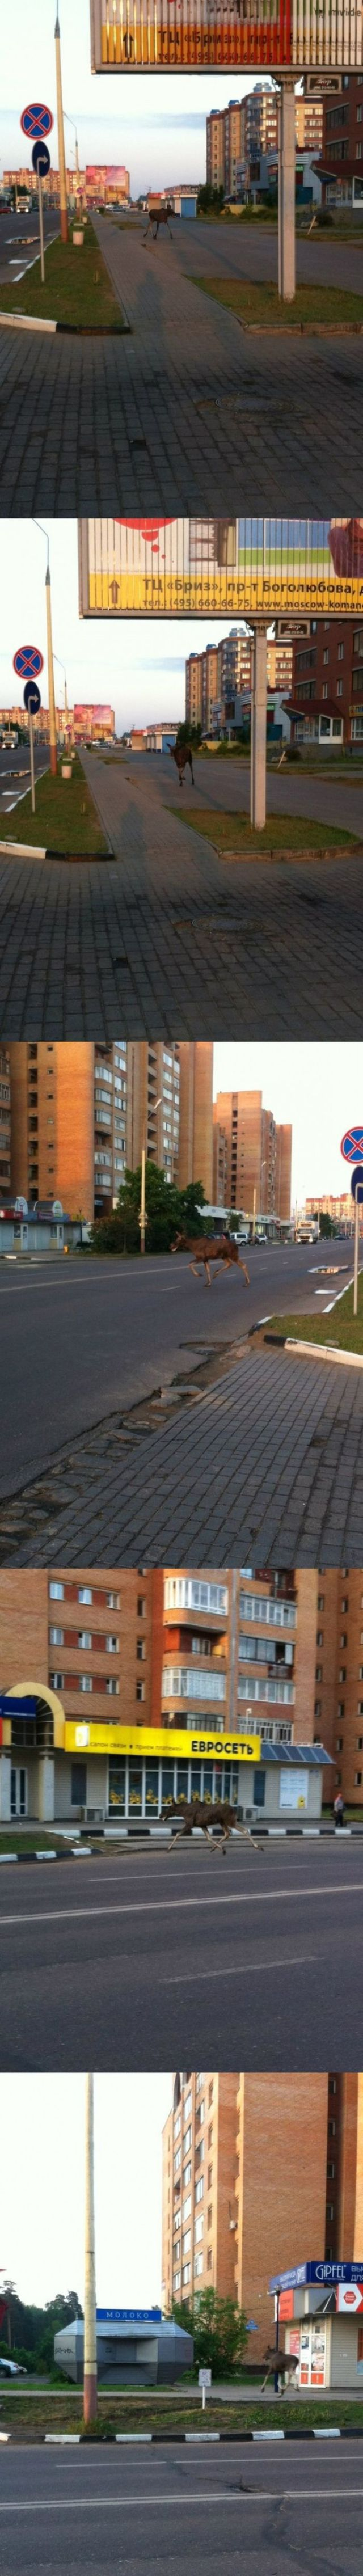 A Little of What You Can Expect to See When You Visit Russia